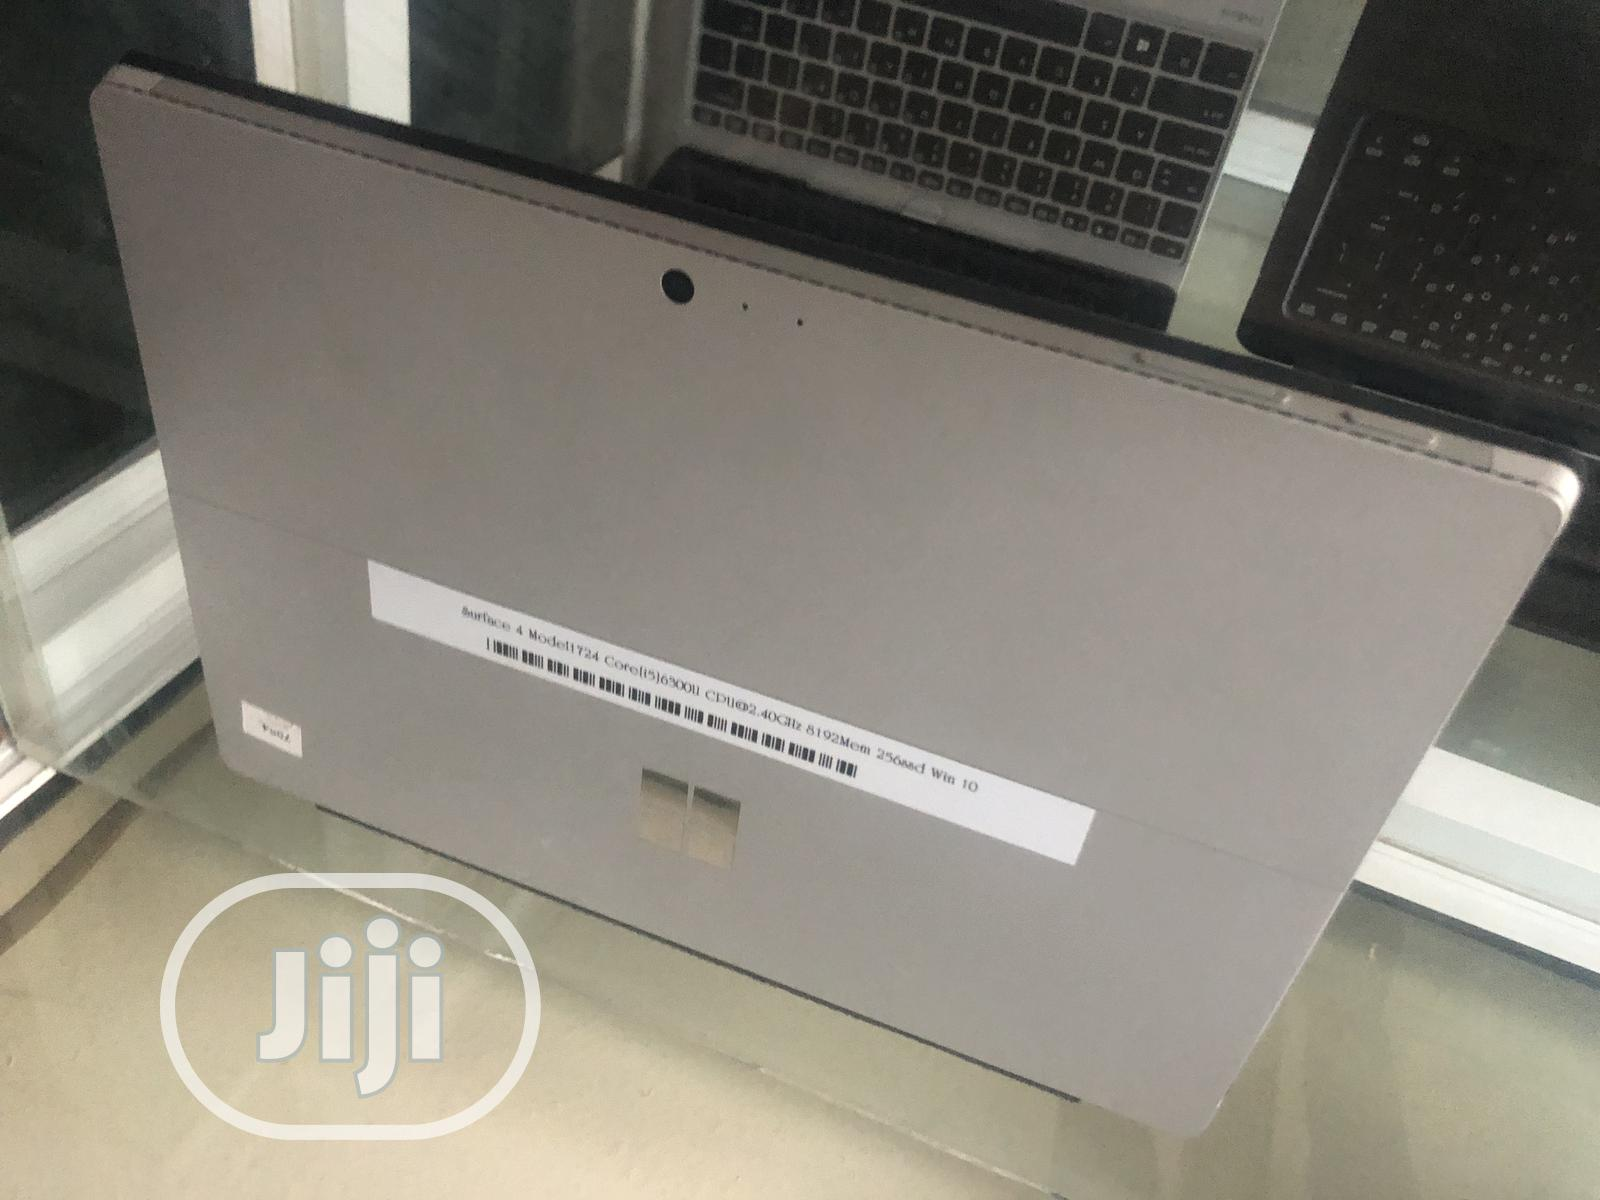 Laptop Microsoft Surface Pro 4 8GB Intel Core i5 SSD 256GB | Laptops & Computers for sale in Wuse 2, Abuja (FCT) State, Nigeria